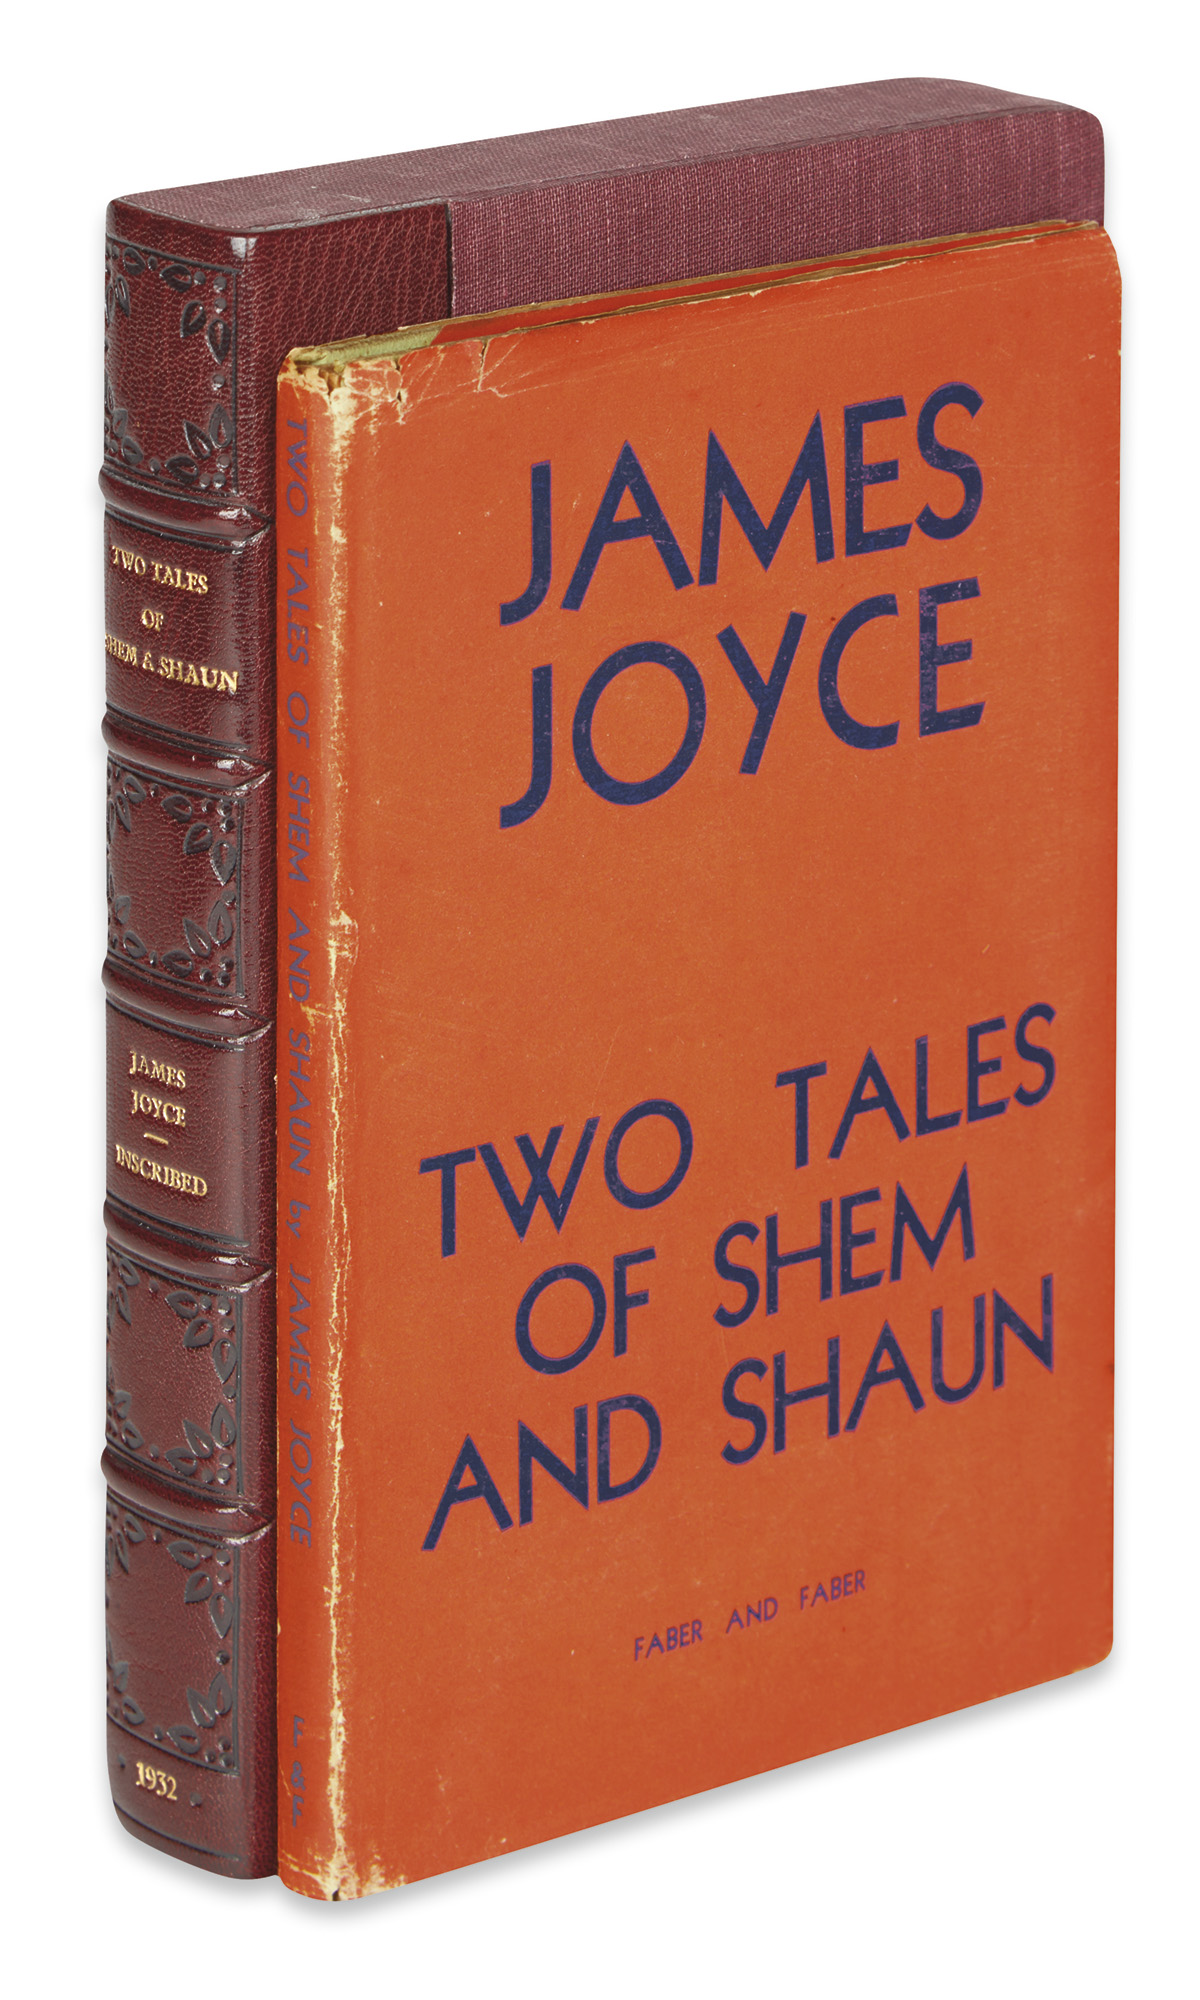 JOYCE-JAMES-Two-Tales-of-Shem-and-Shaun-Fragments-from-Work-